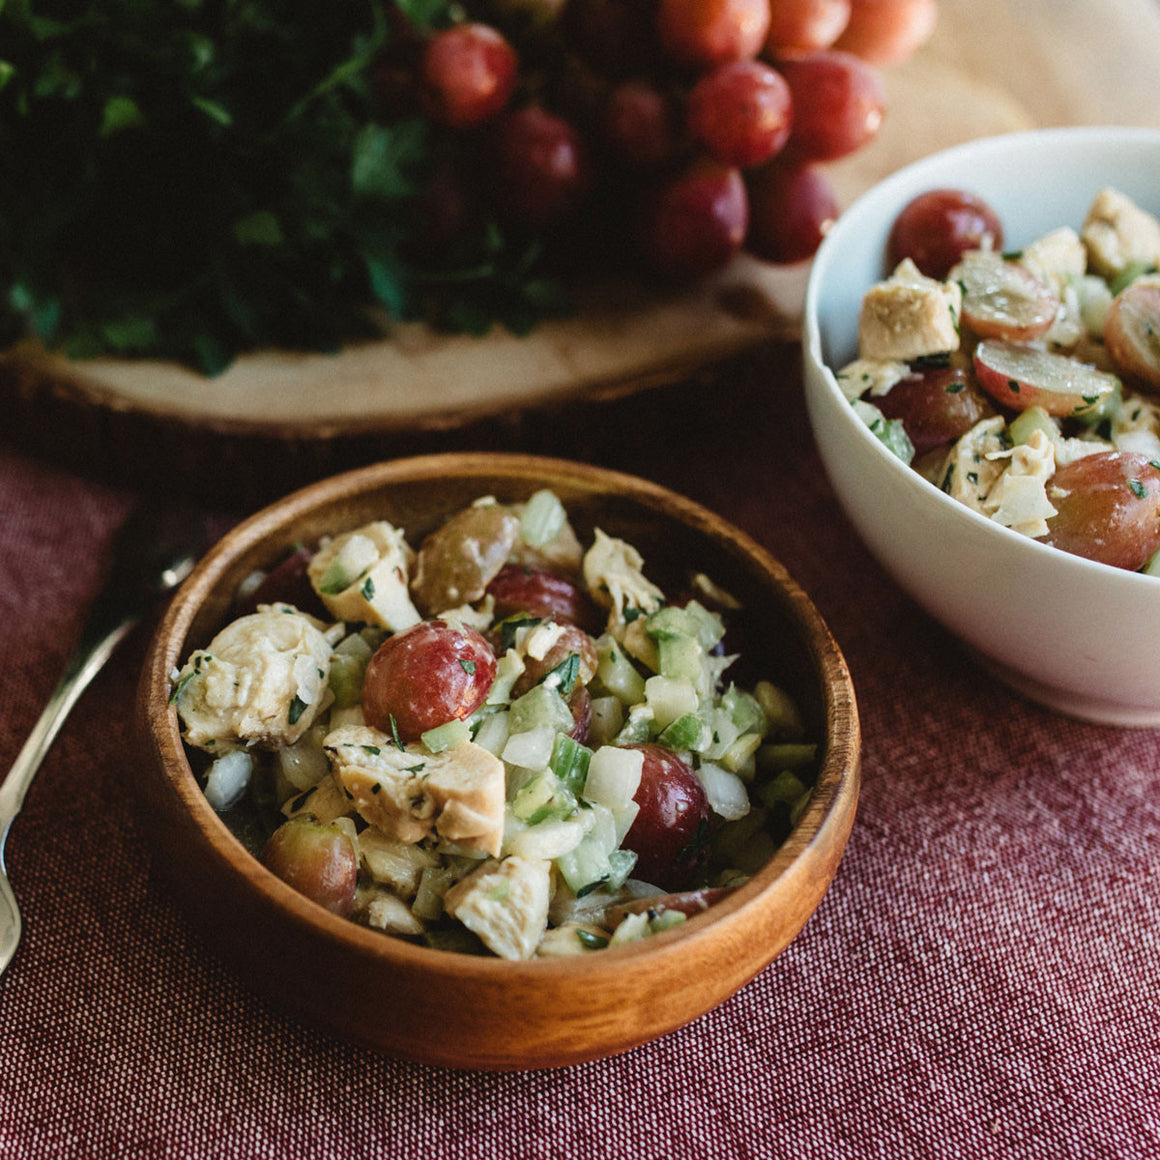 Chopped chicken salad with grapes and dijon mustard (W30)